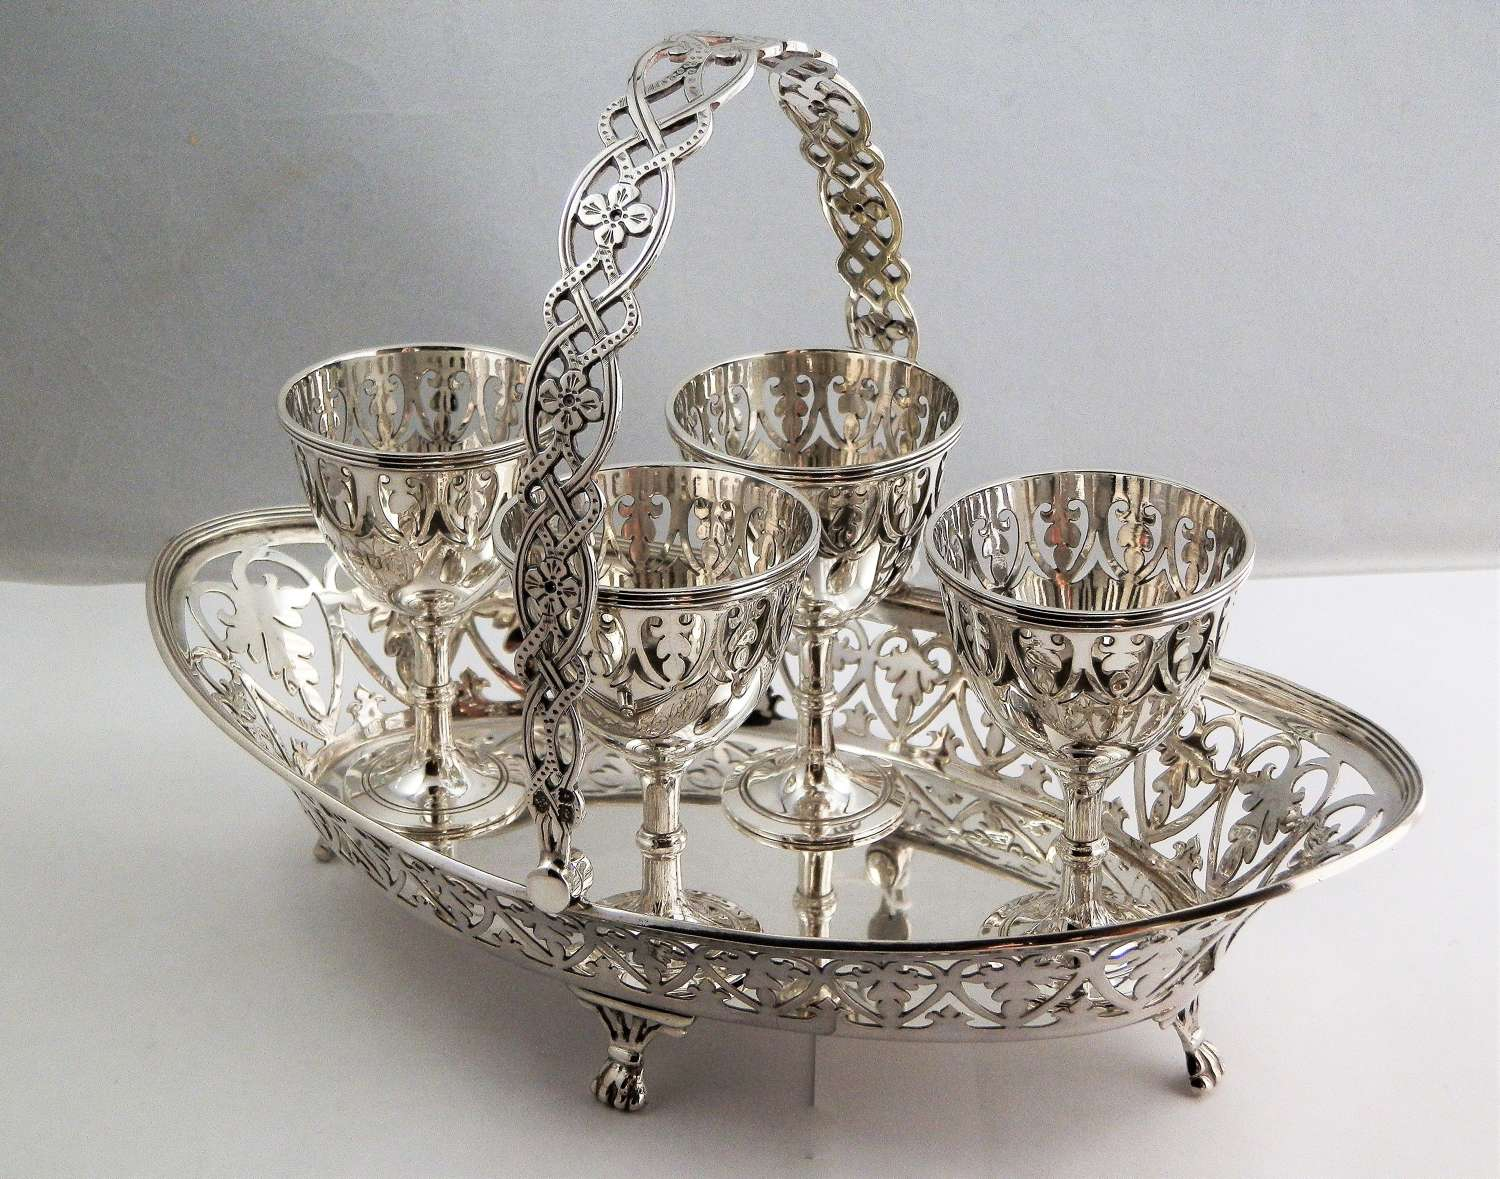 Victorian silver egg cruet set, London 1898